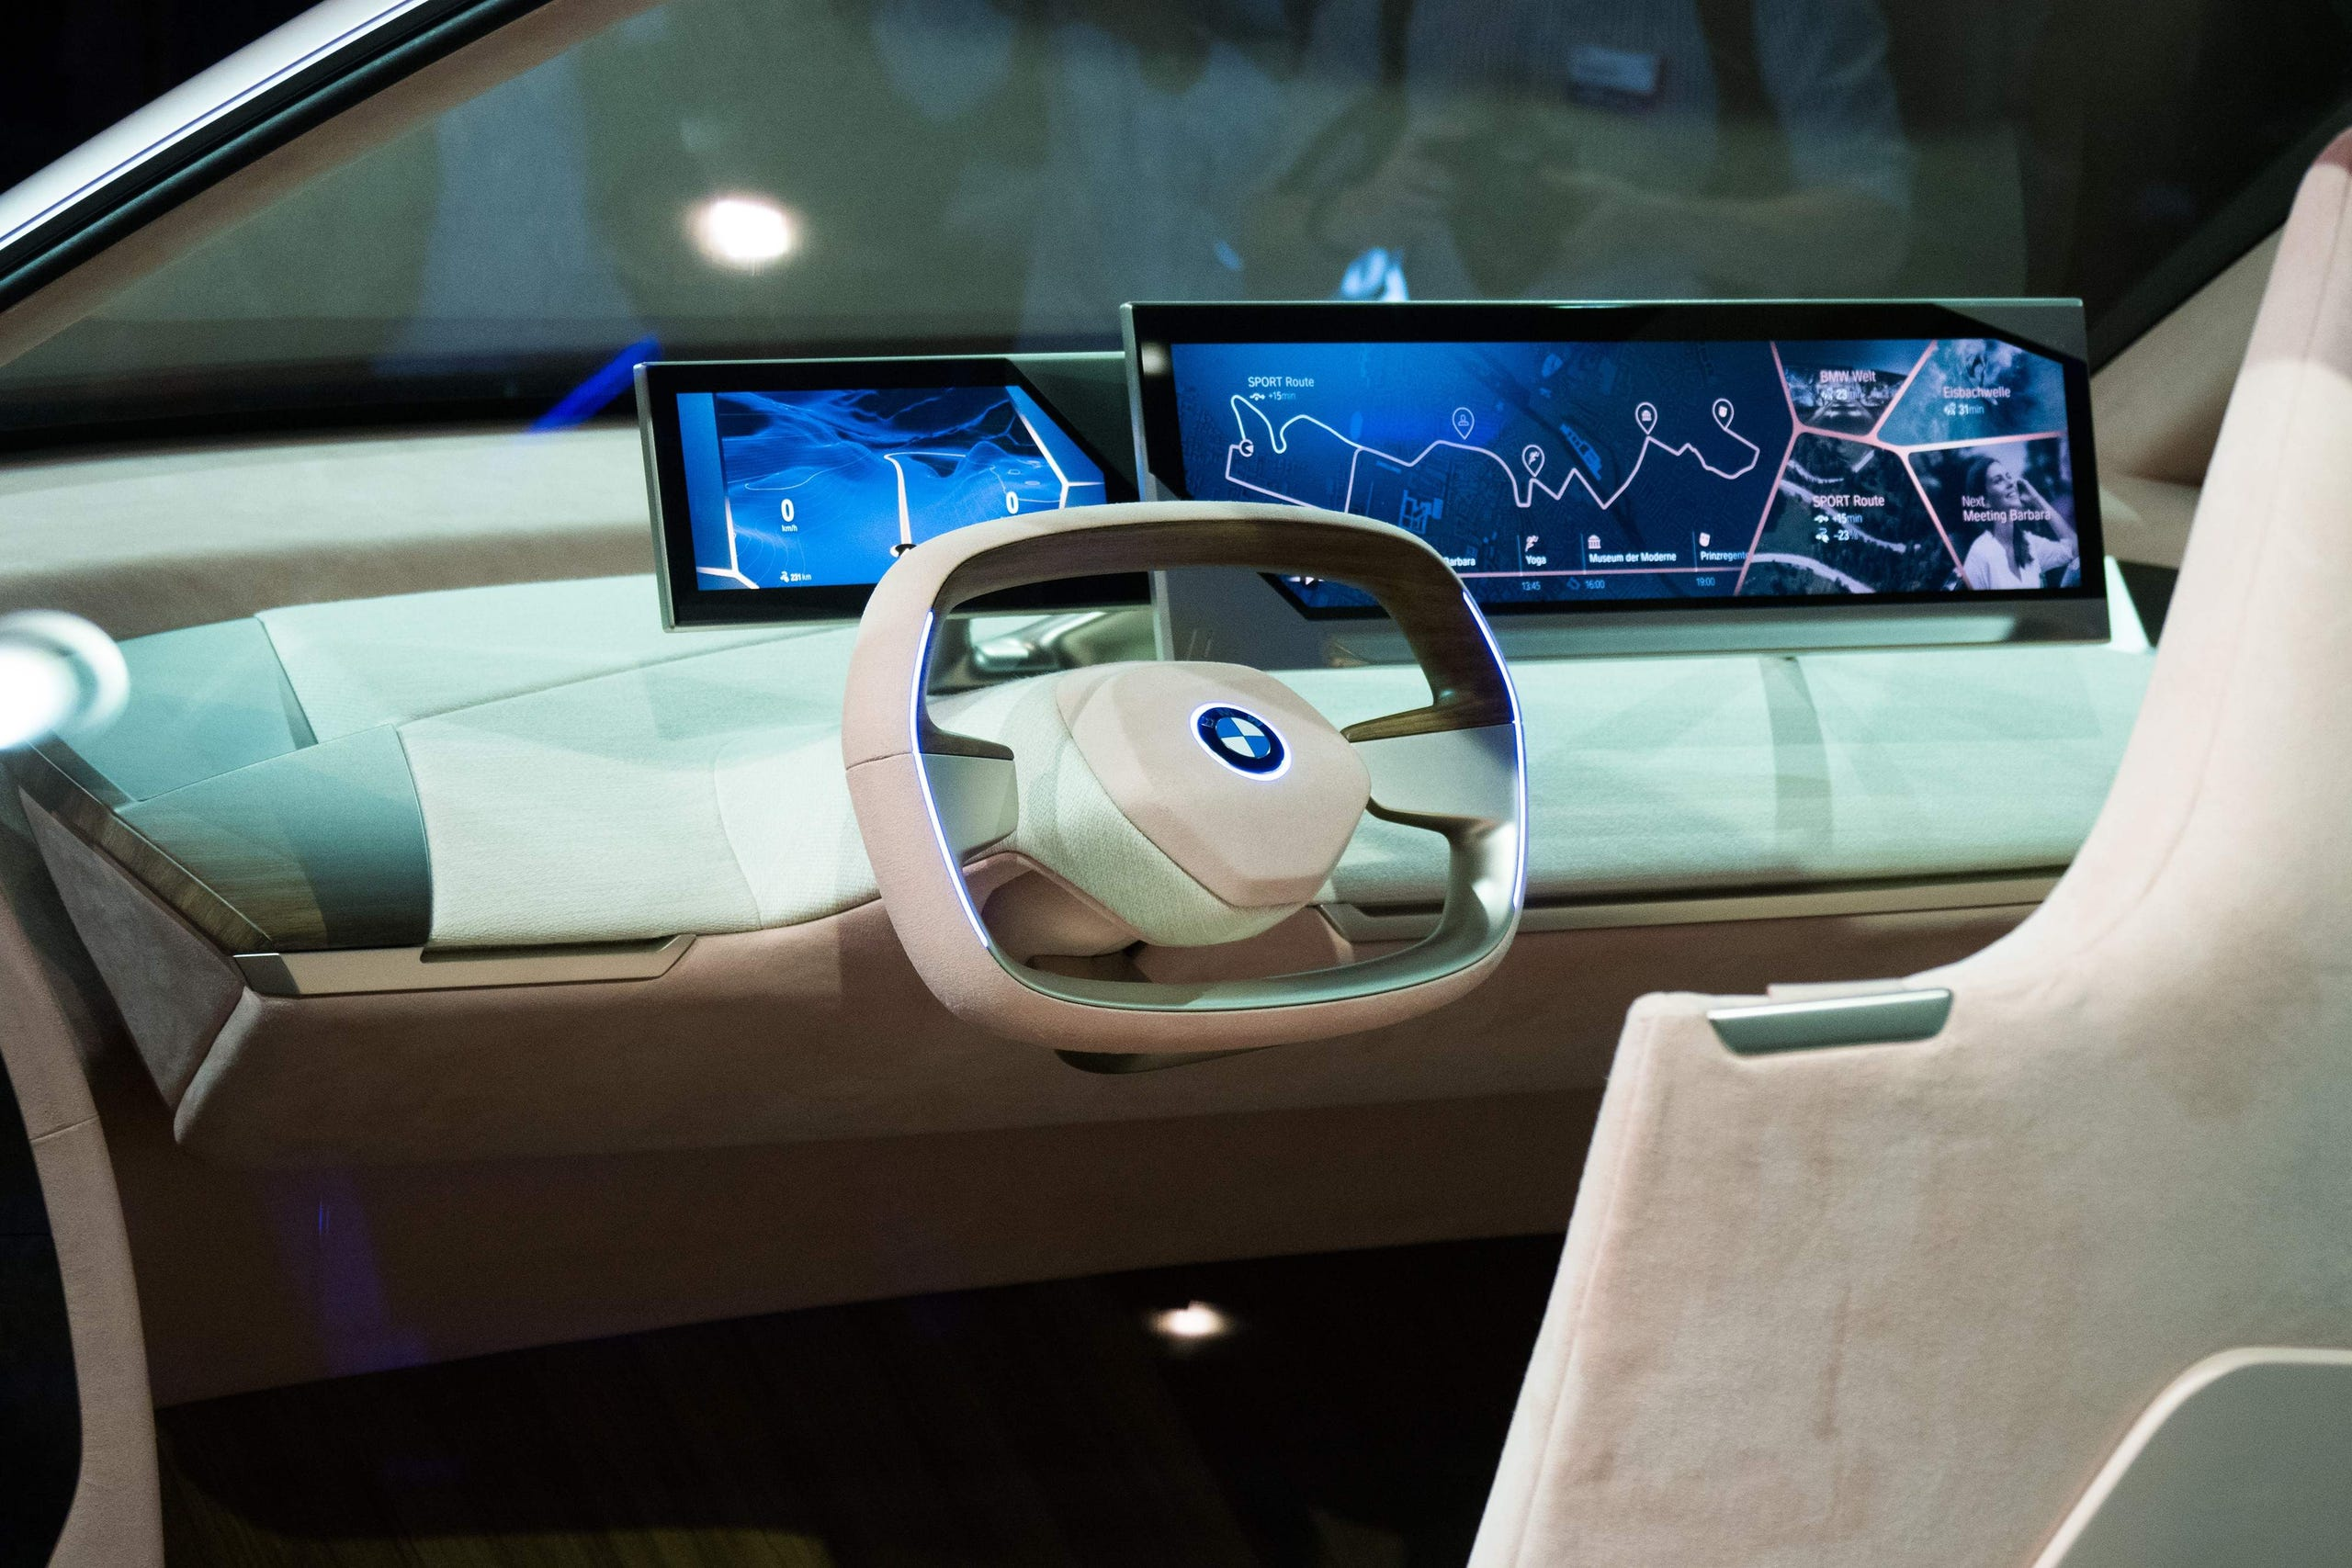 The steering wheel and display inside the BMW Vision iNEXT are unveiled at a special event ahead of the LA Auto Show, November 27, 2018 in Los Angeles.  The BMW Vision iNEXT is fully electric, fully connected and offers highly autonomous driving. The series-production model, set to become the company's new technology flagship, will be built at BMW Group Plant Dingolfing from 2021.